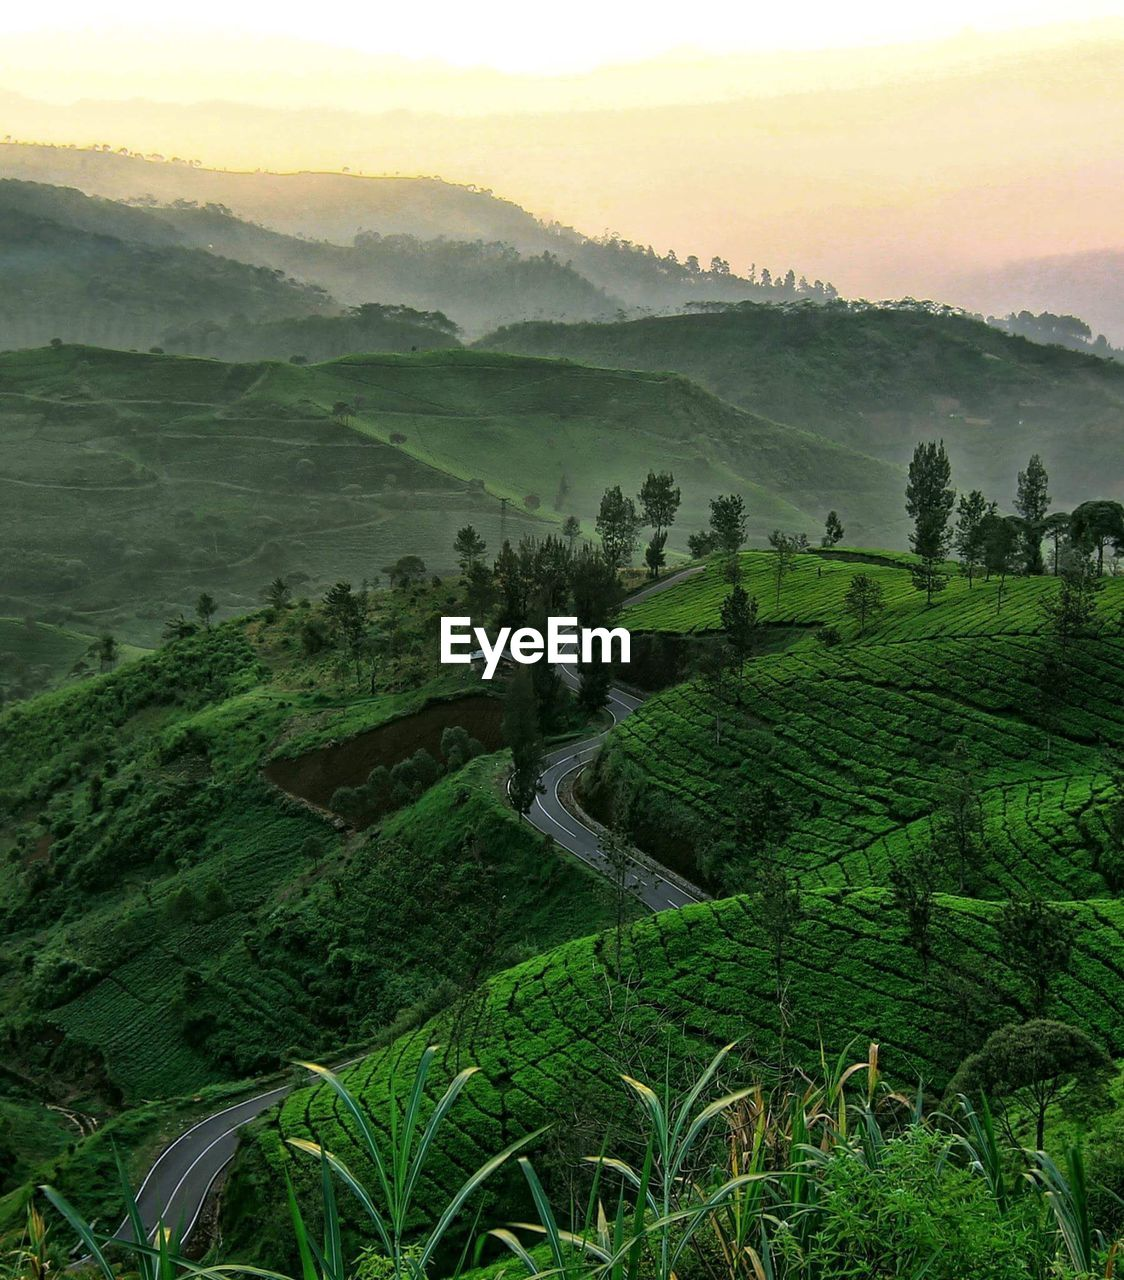 Scenic View Of Tea Plantation On Mountains Against Sky During Sunset